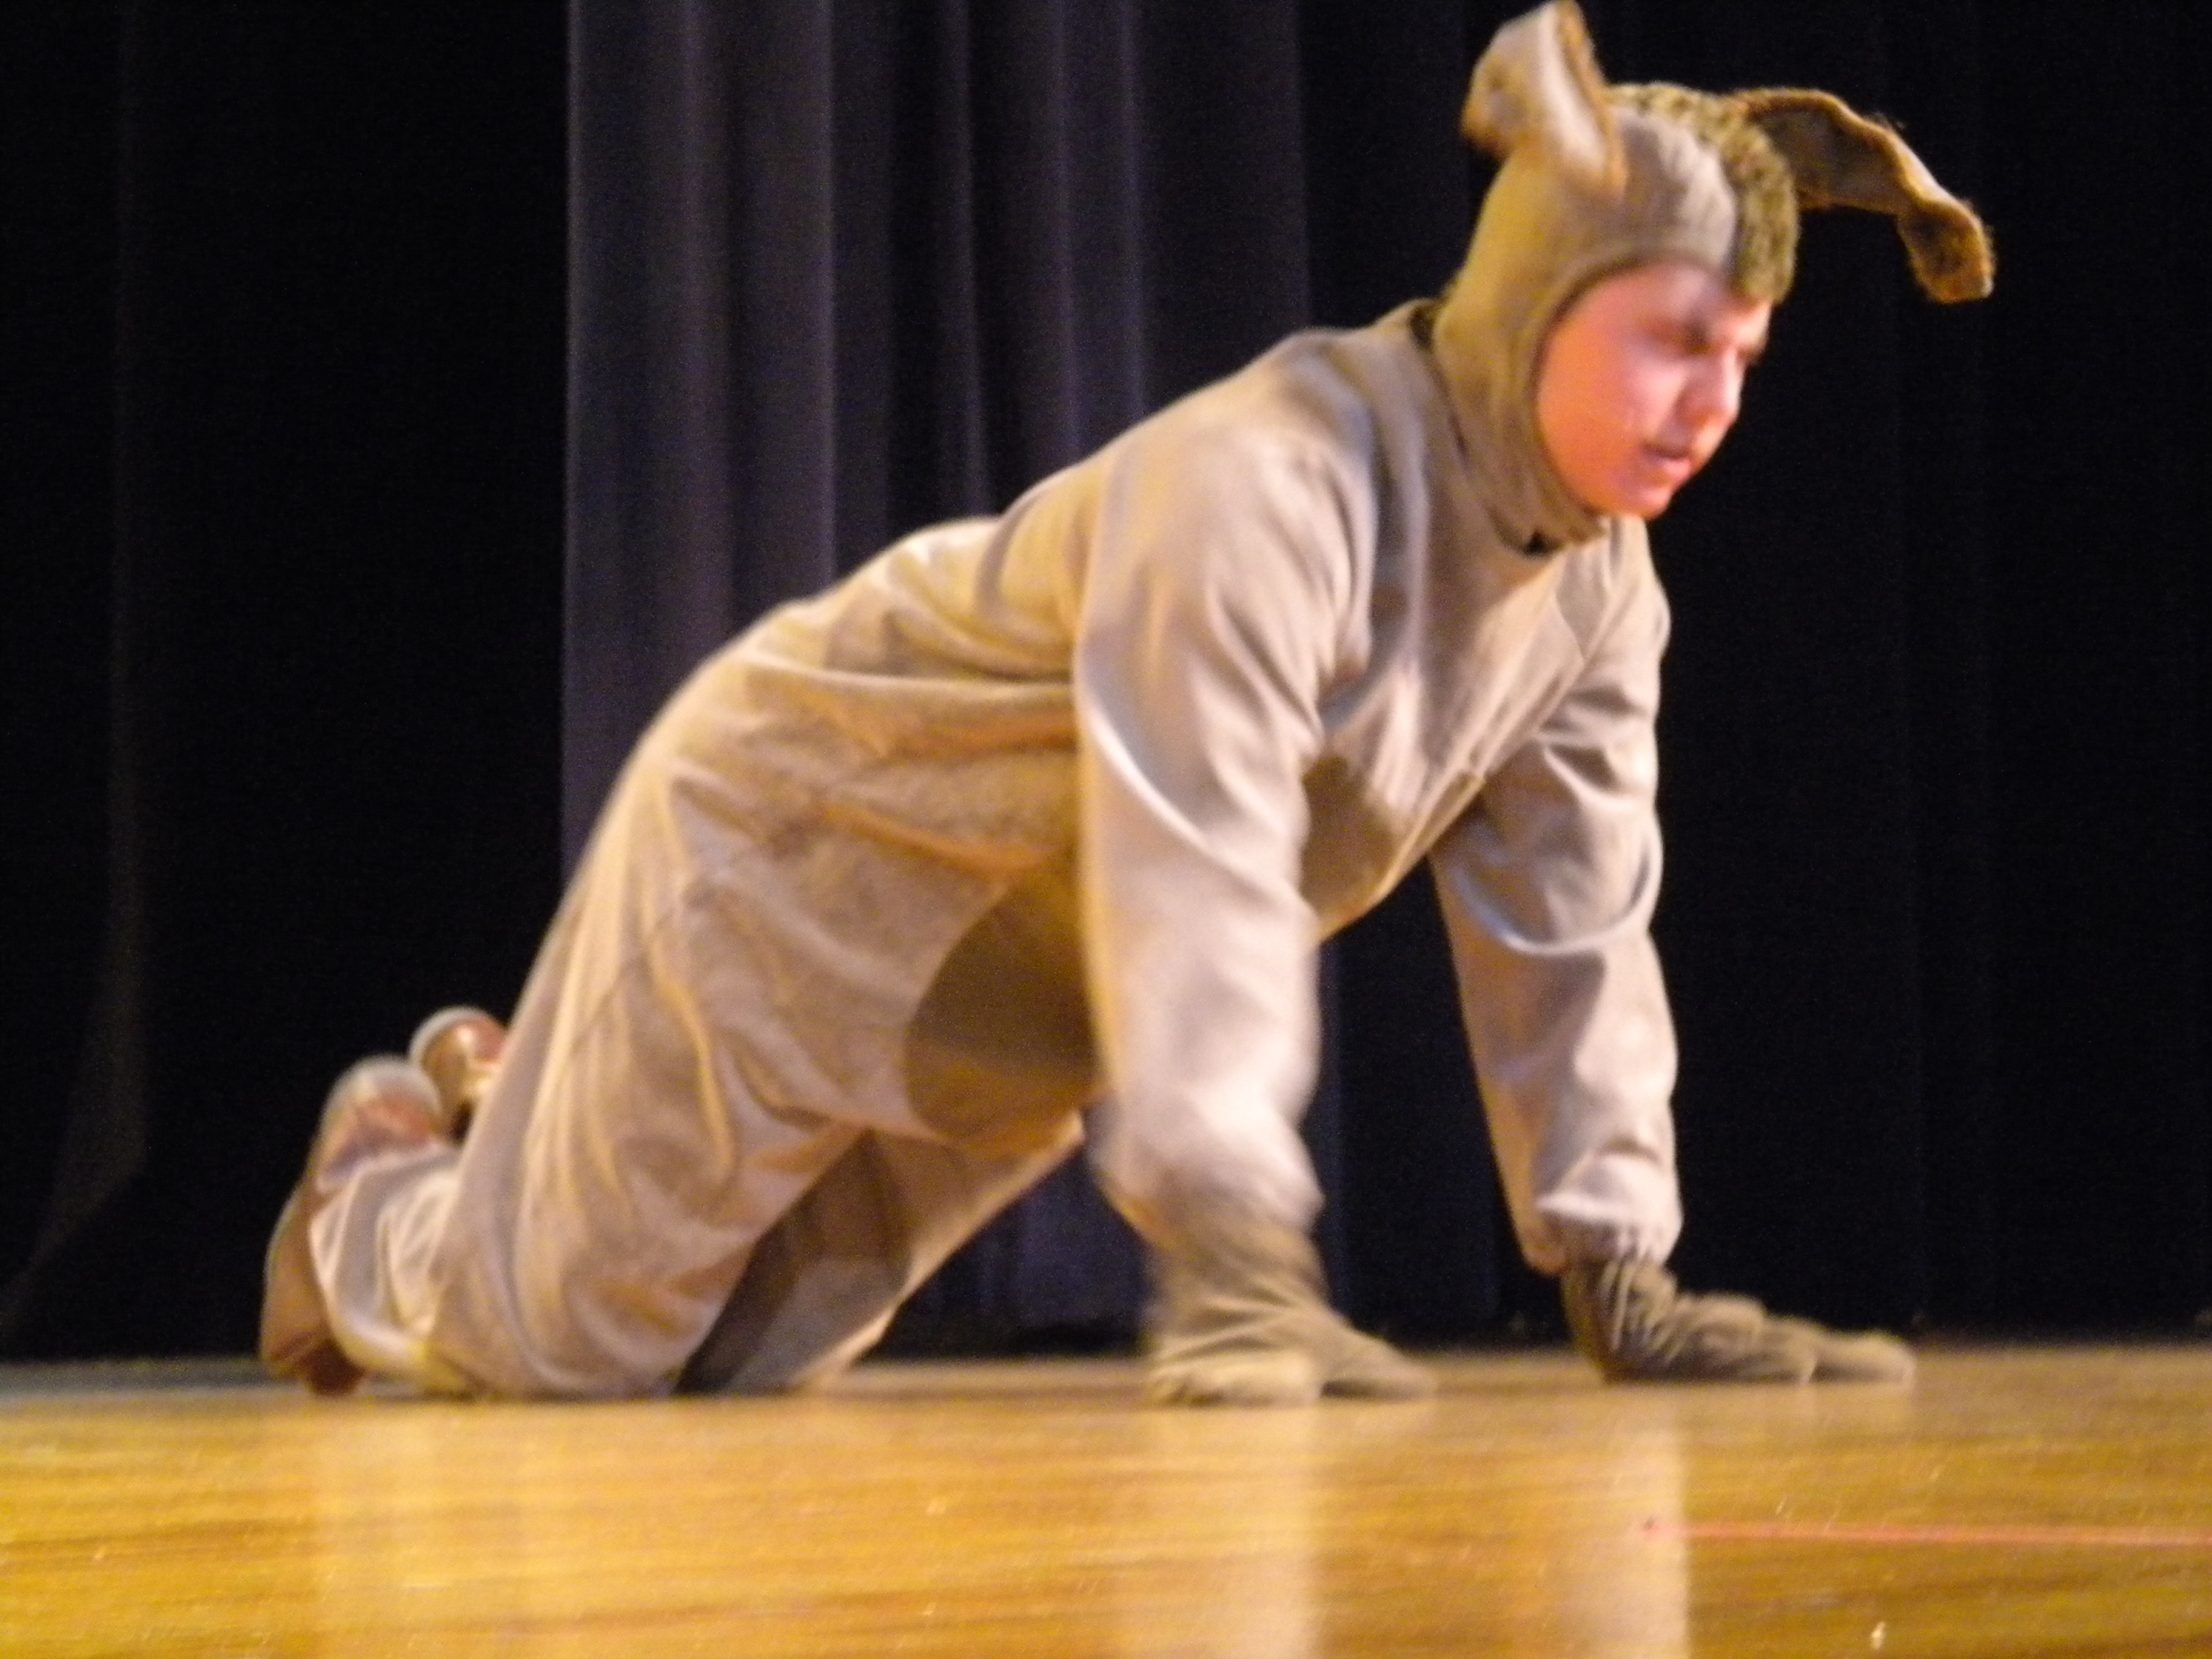 BAILEY IN WINNIE THE POOH 163